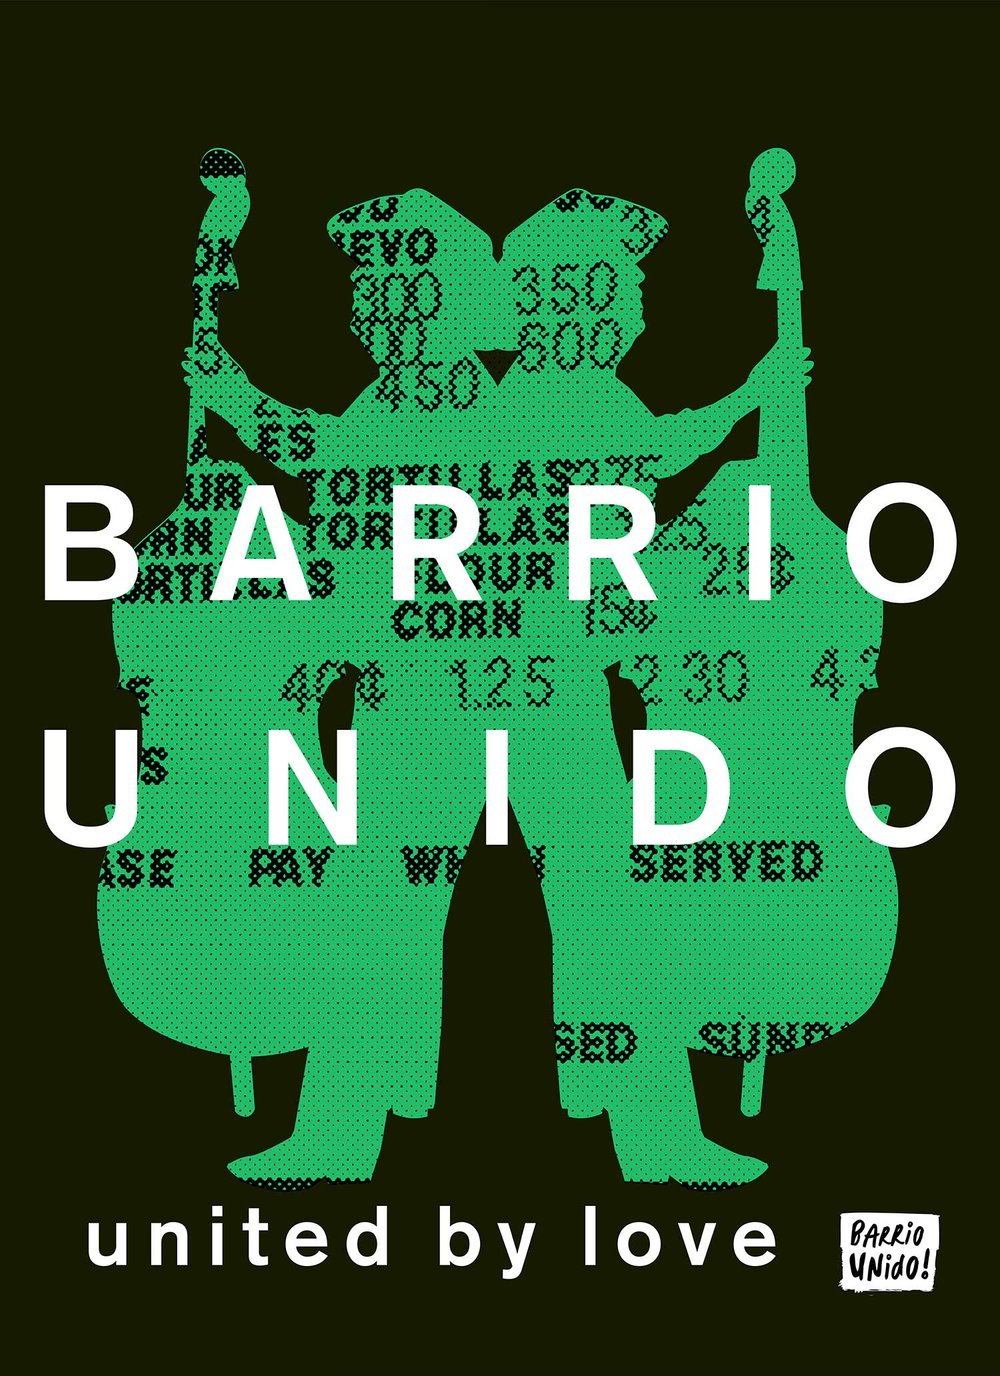 ron-miriello-grafico-barrio-logan-posters-san-diego-community-design-Miriello-branding-officina-05.jpg